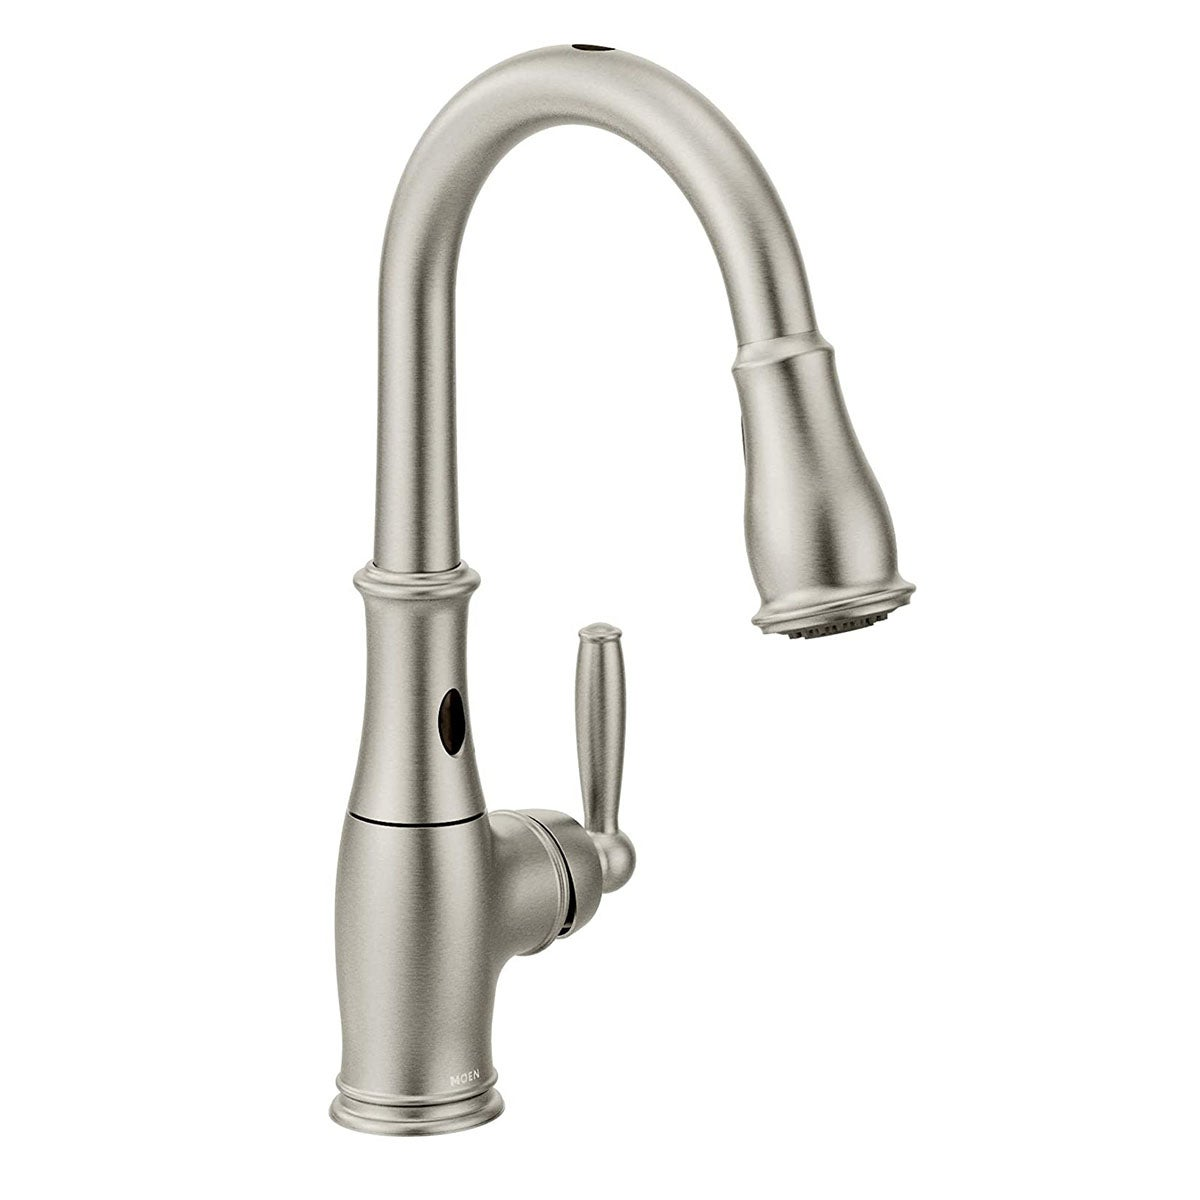 The Best Touchless Kitchen Faucet Options For Homeowners Bob Vila